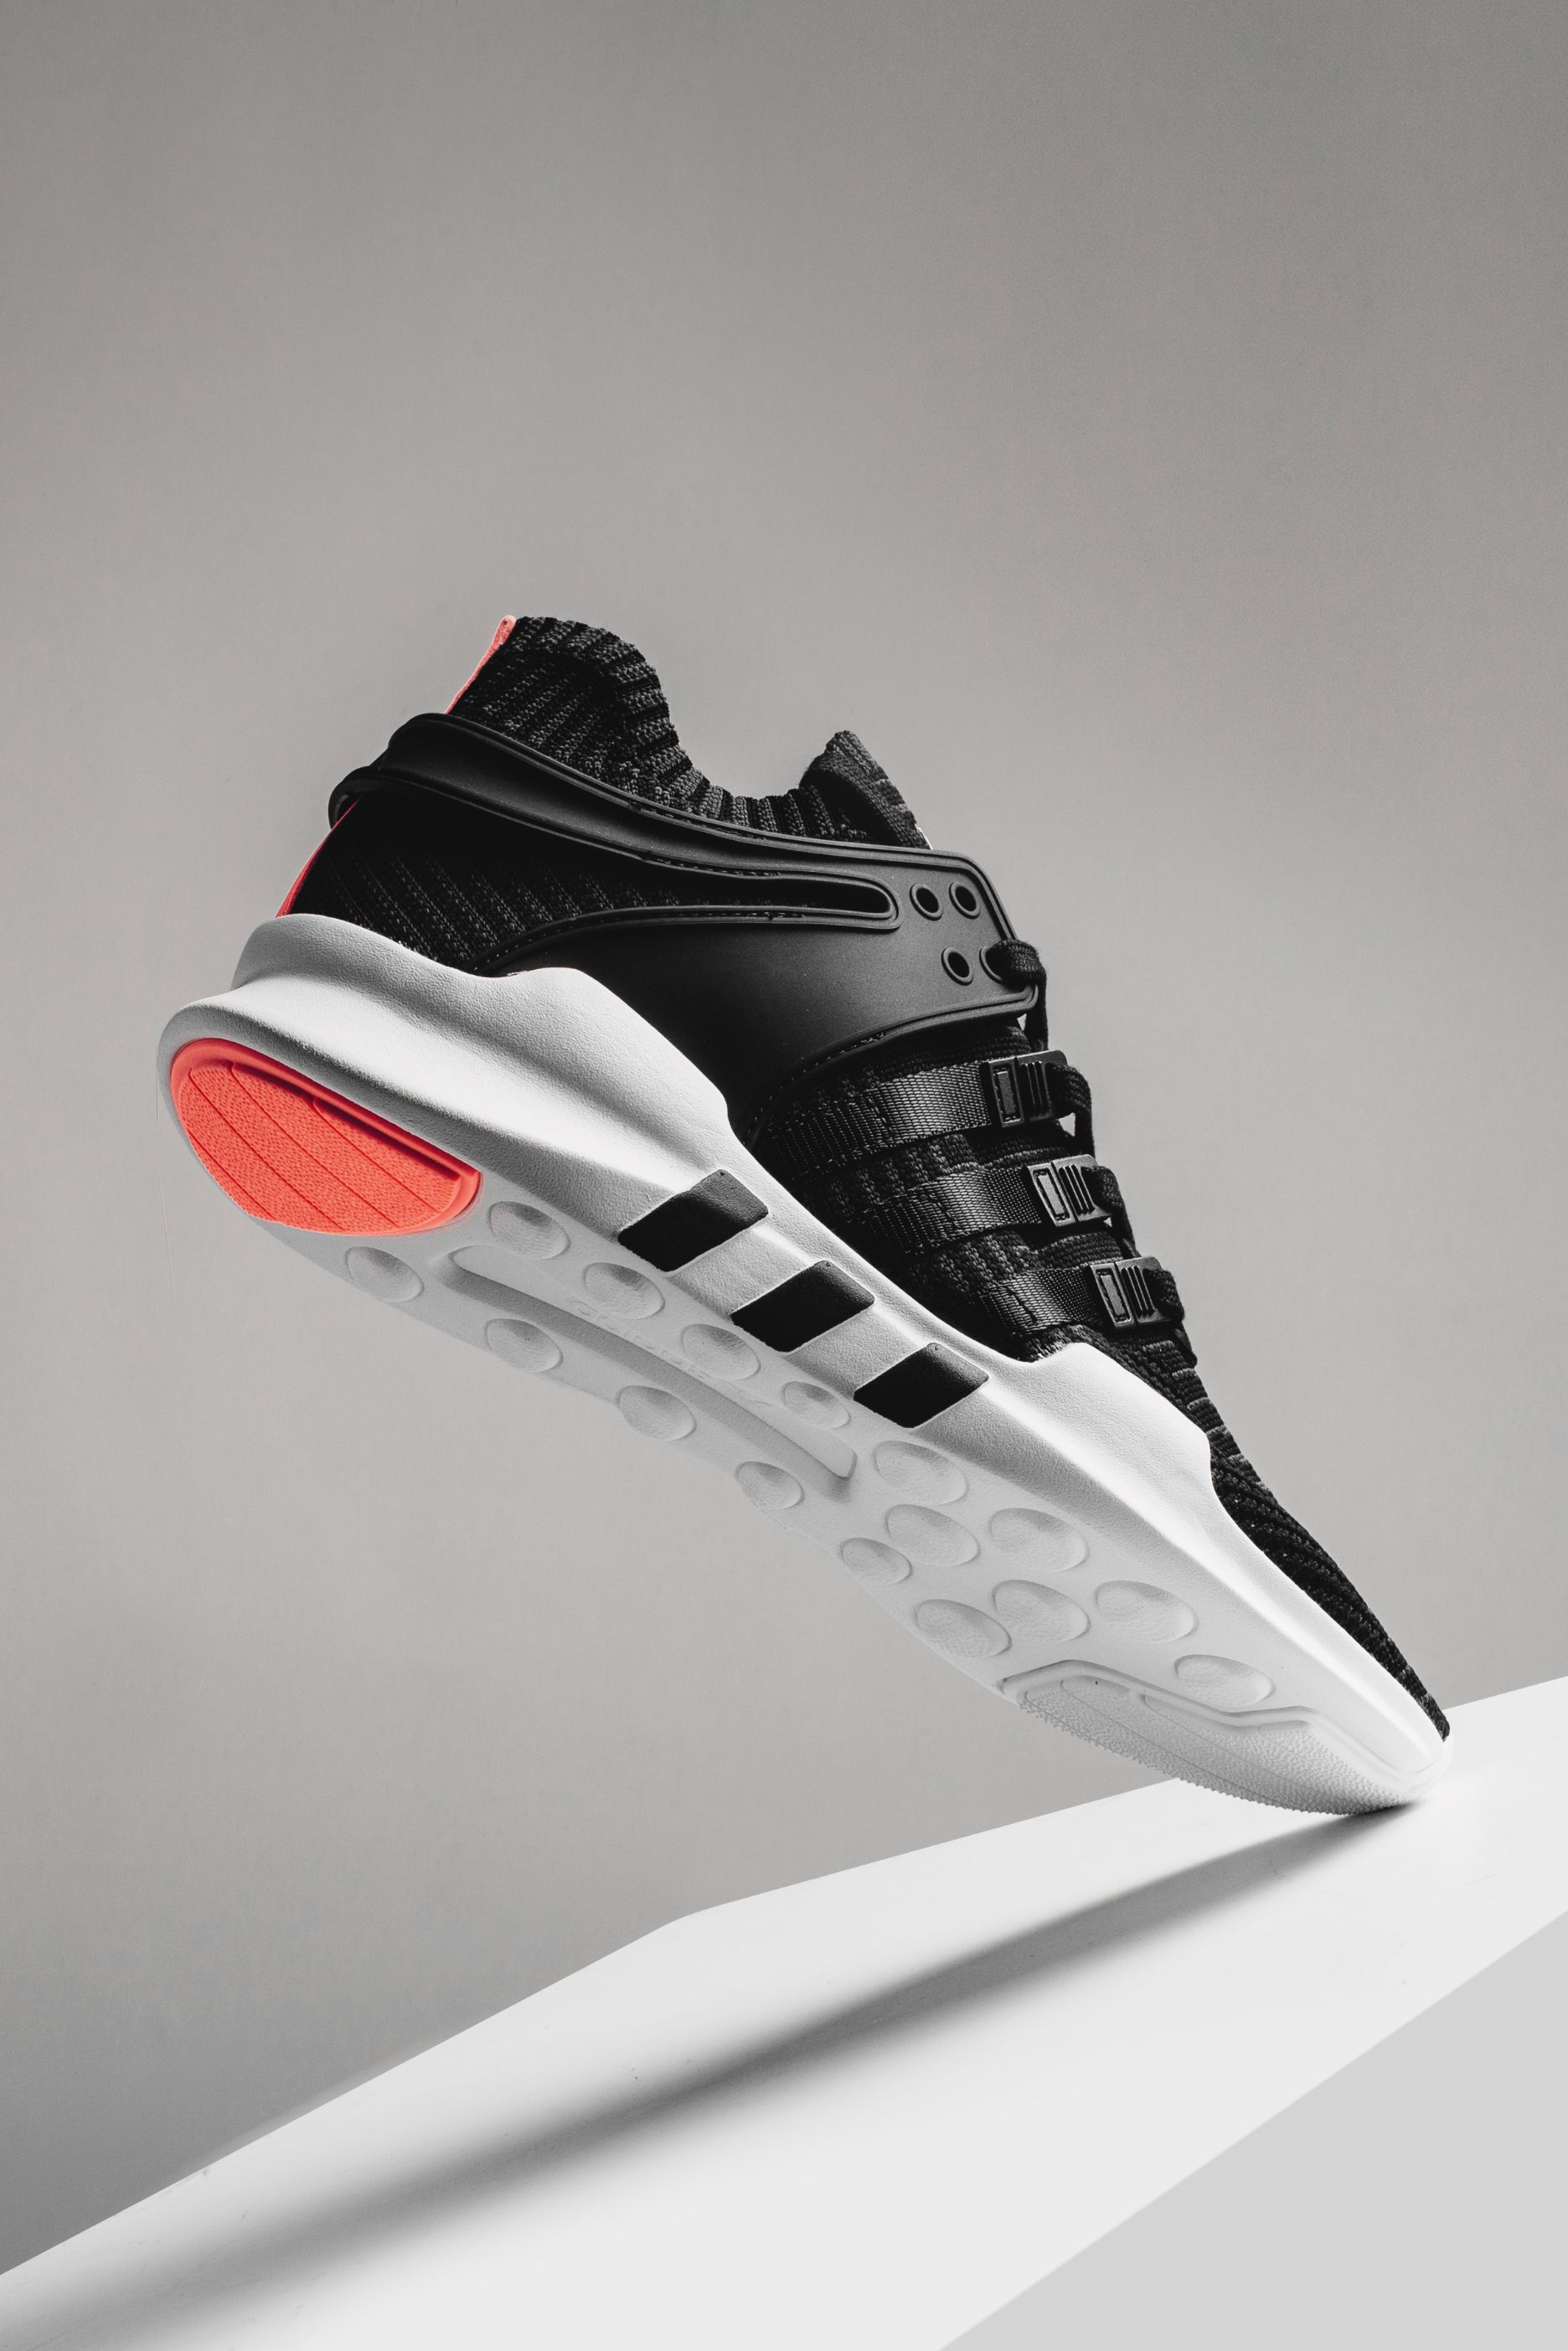 73971f152bb4 Adidas Originals EQT Support ADV Primeknit  Adidas  Originals  EQT   Primeknit  Fashion  Streetwear  Style  Urban  Lookbook  Photography   Footwear  Sneakers ...